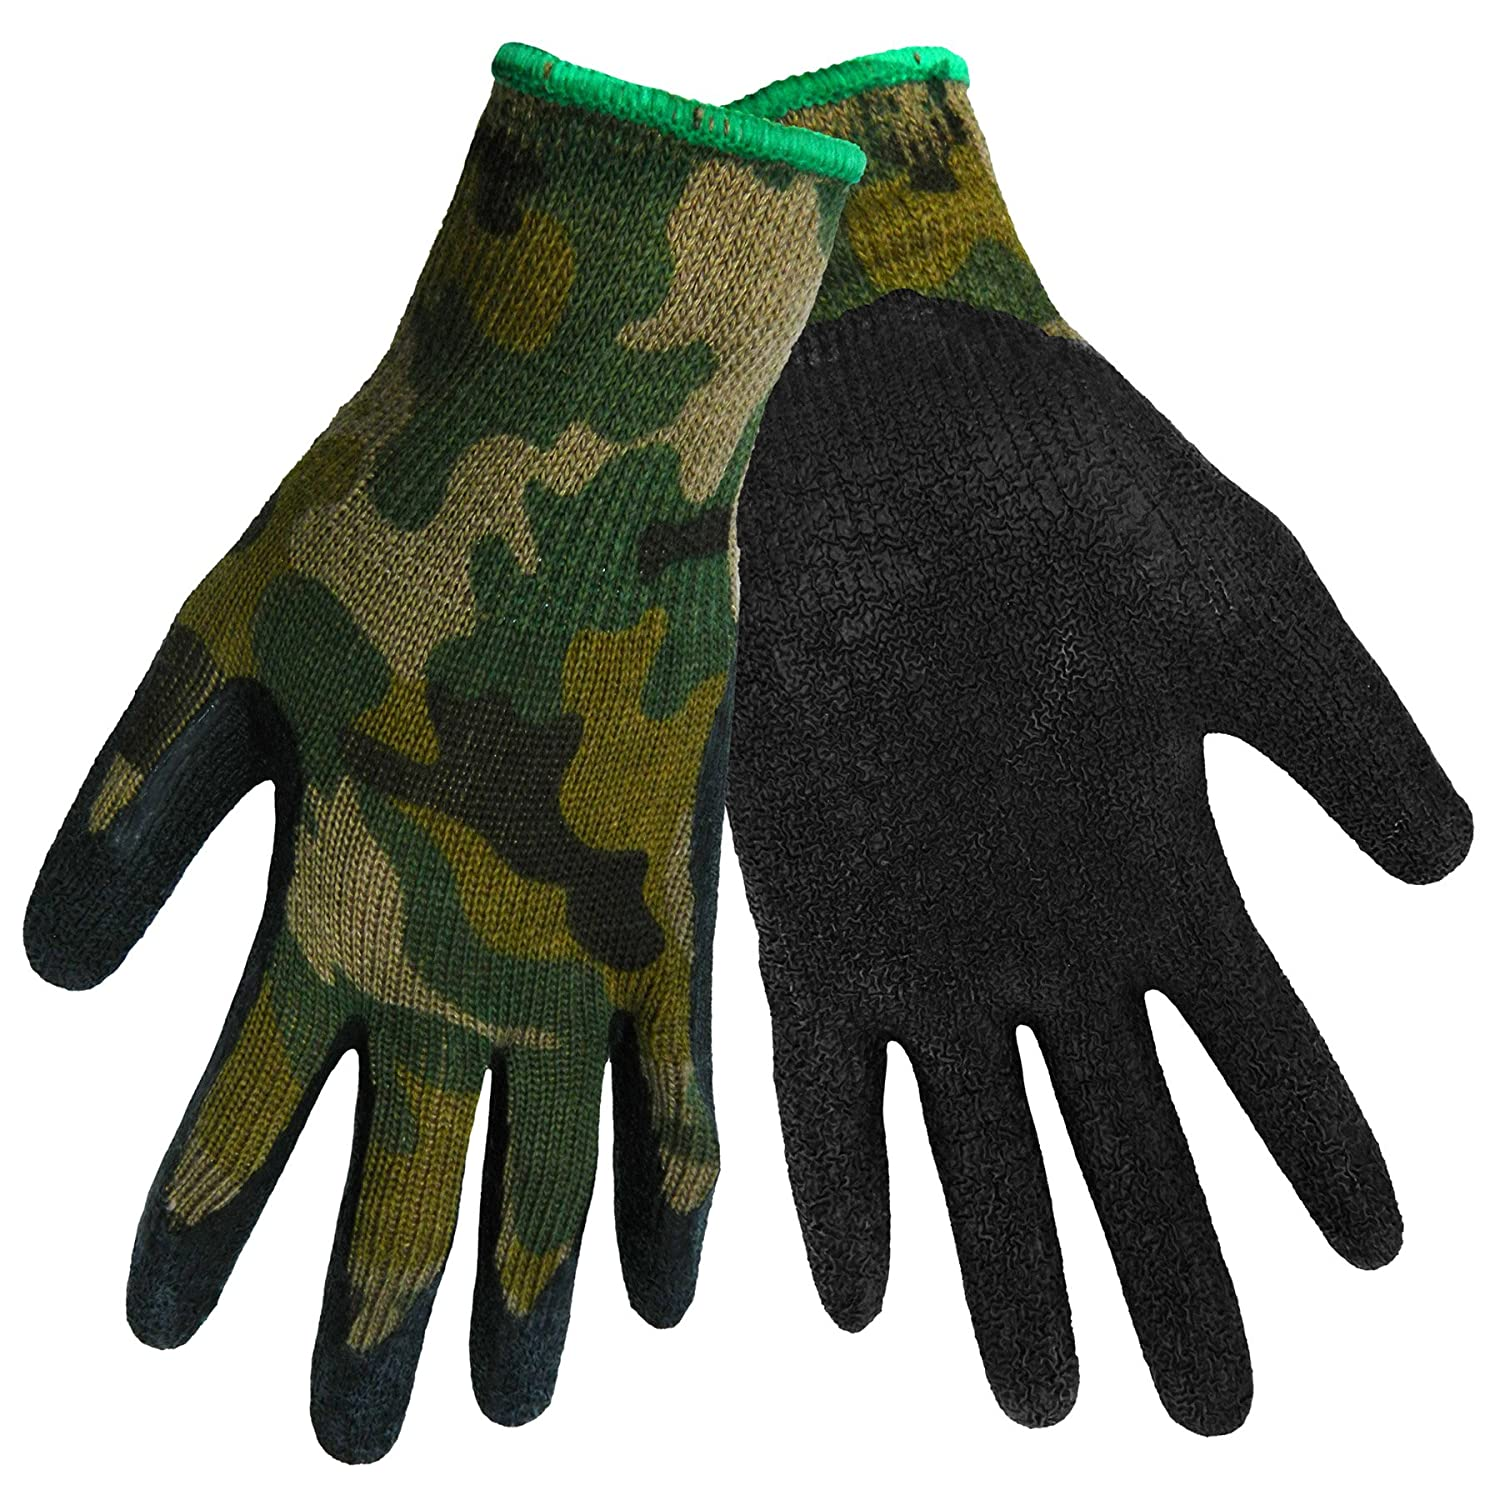 300B-08 Black Global Glove 300B Gripster Rubber Dip Glove with Knitwrist and Seamless Camo Poly//Cotton Liner Case of 72 Work Medium